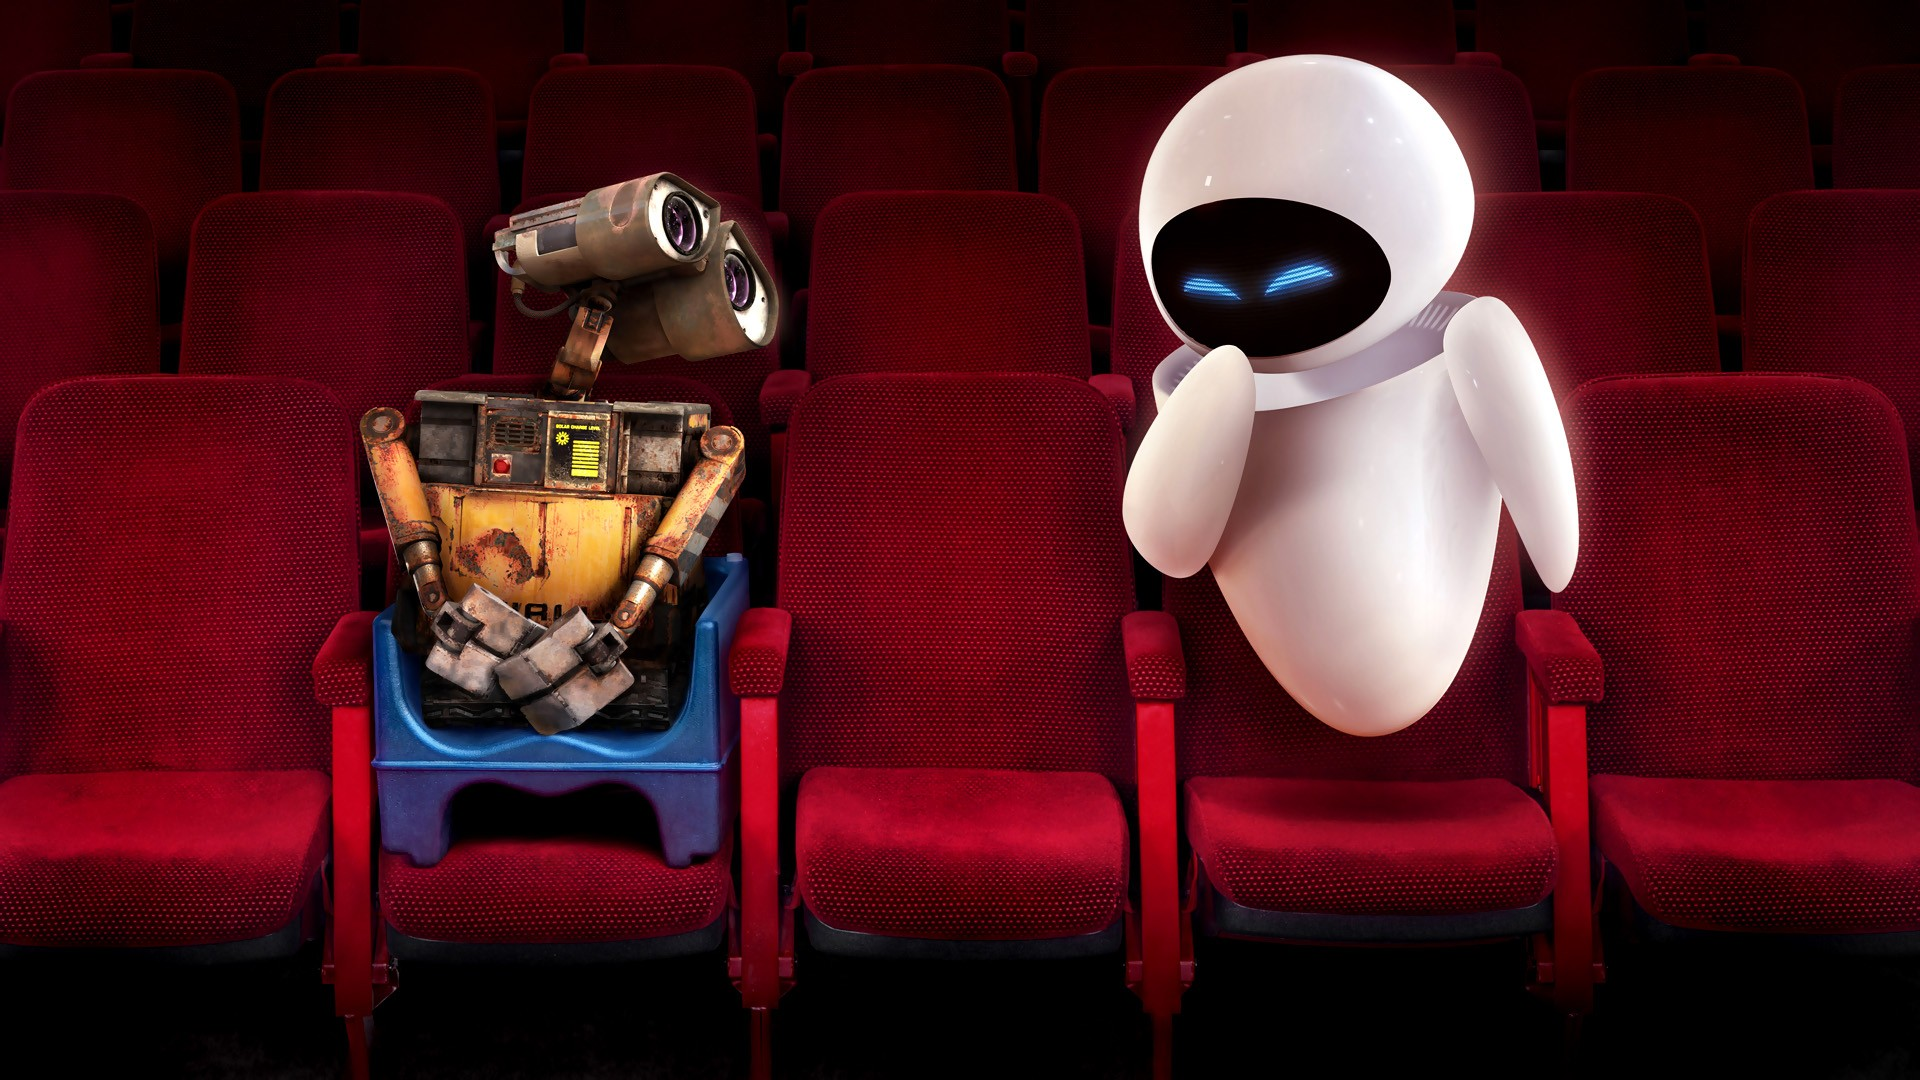 Pixar Cars Wallpaper Wall E And Eve In Theater Wallpapers Hd Wallpapers Id